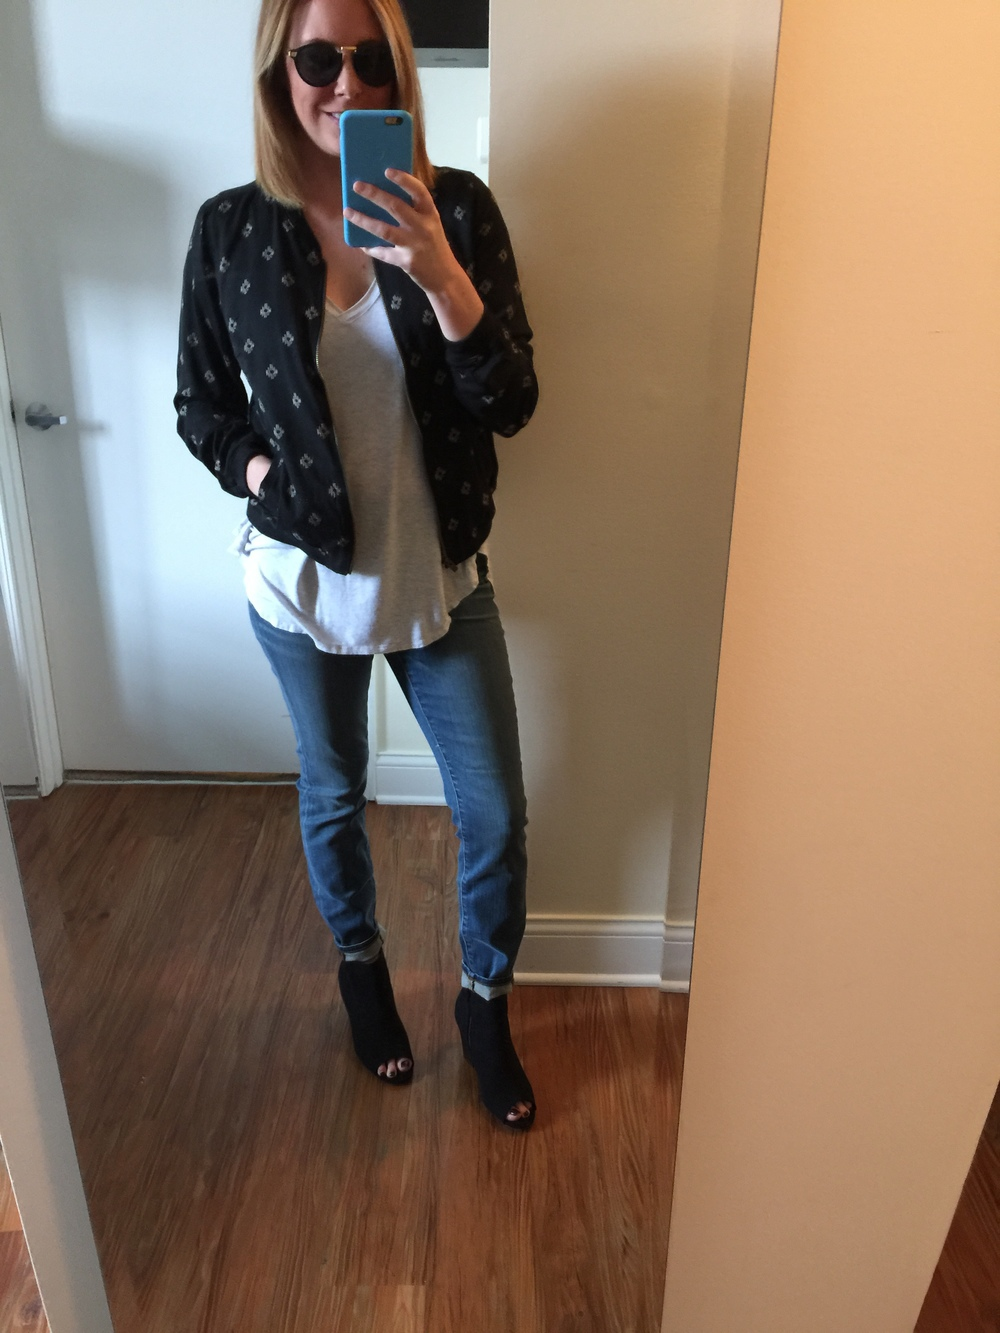 Jacket: Old Navy,   Patterned Bomber Jacket-Black , T-shirt: Anthropologie:  V-neck,  Jeans: Madewell,  High Riser Skinny in Atlantic Wash , Shoes: Old Navy,  Sueded Open-Toe Ankle Boots